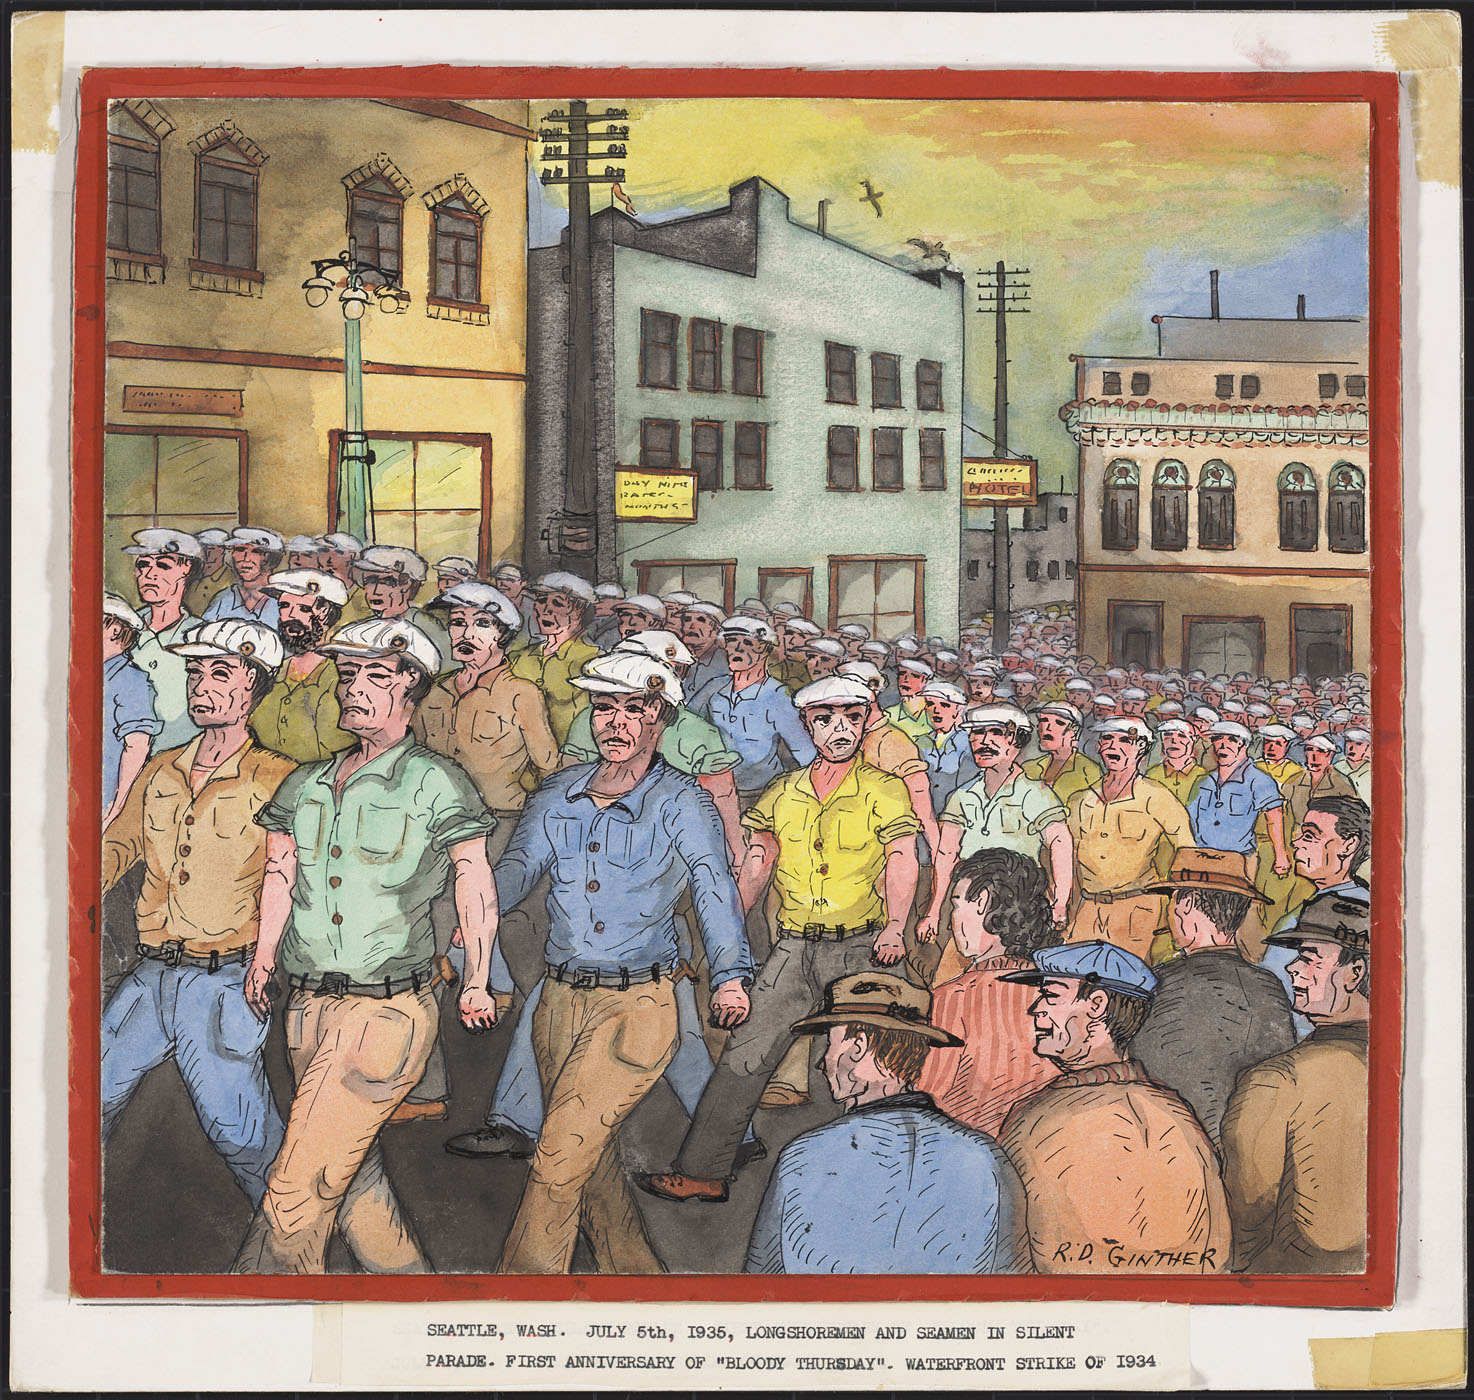 Seattle, Wash.  July 5th, 1935, Longshoremen and Seamen in Silent Parade.  First Anniversary of `Bloody Thursday'.  Waterfront Strike of 1934